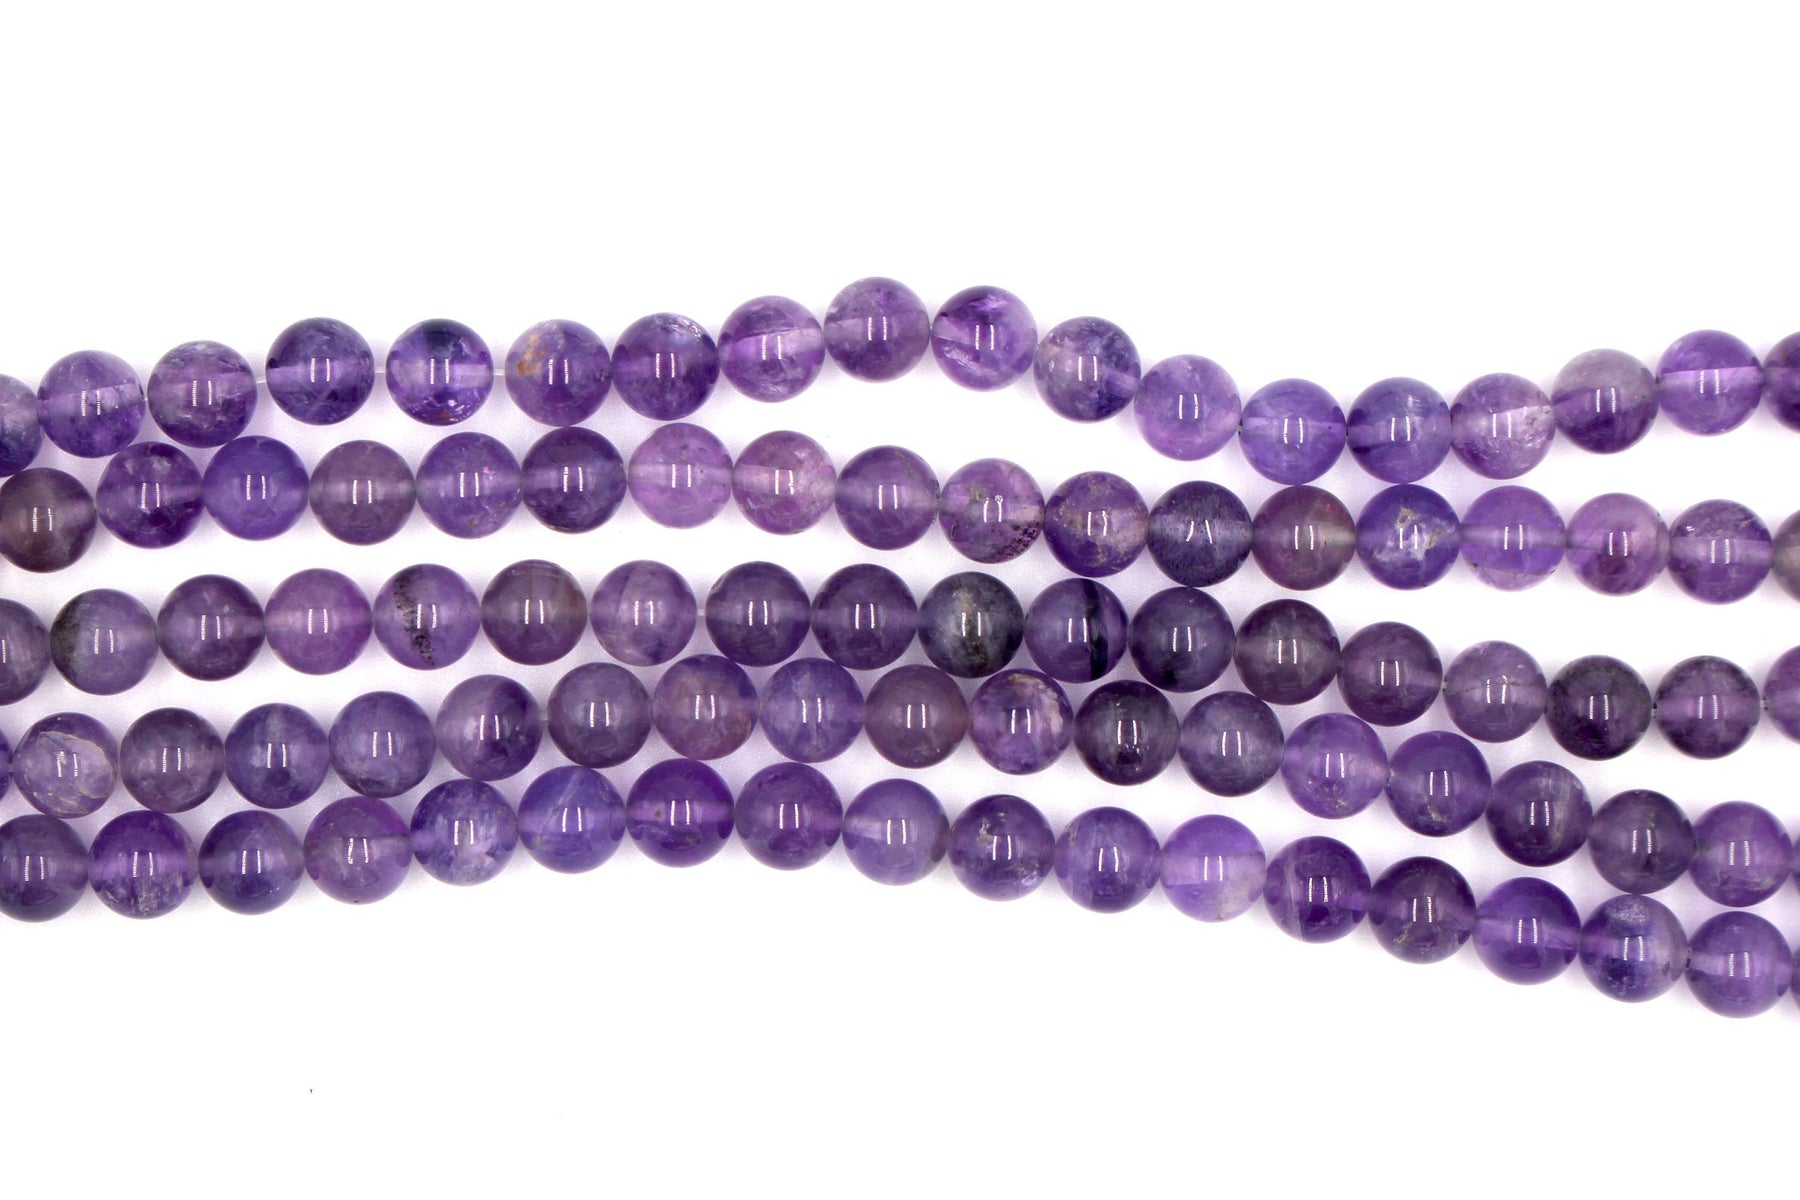 8mm amethyst gemstone beads